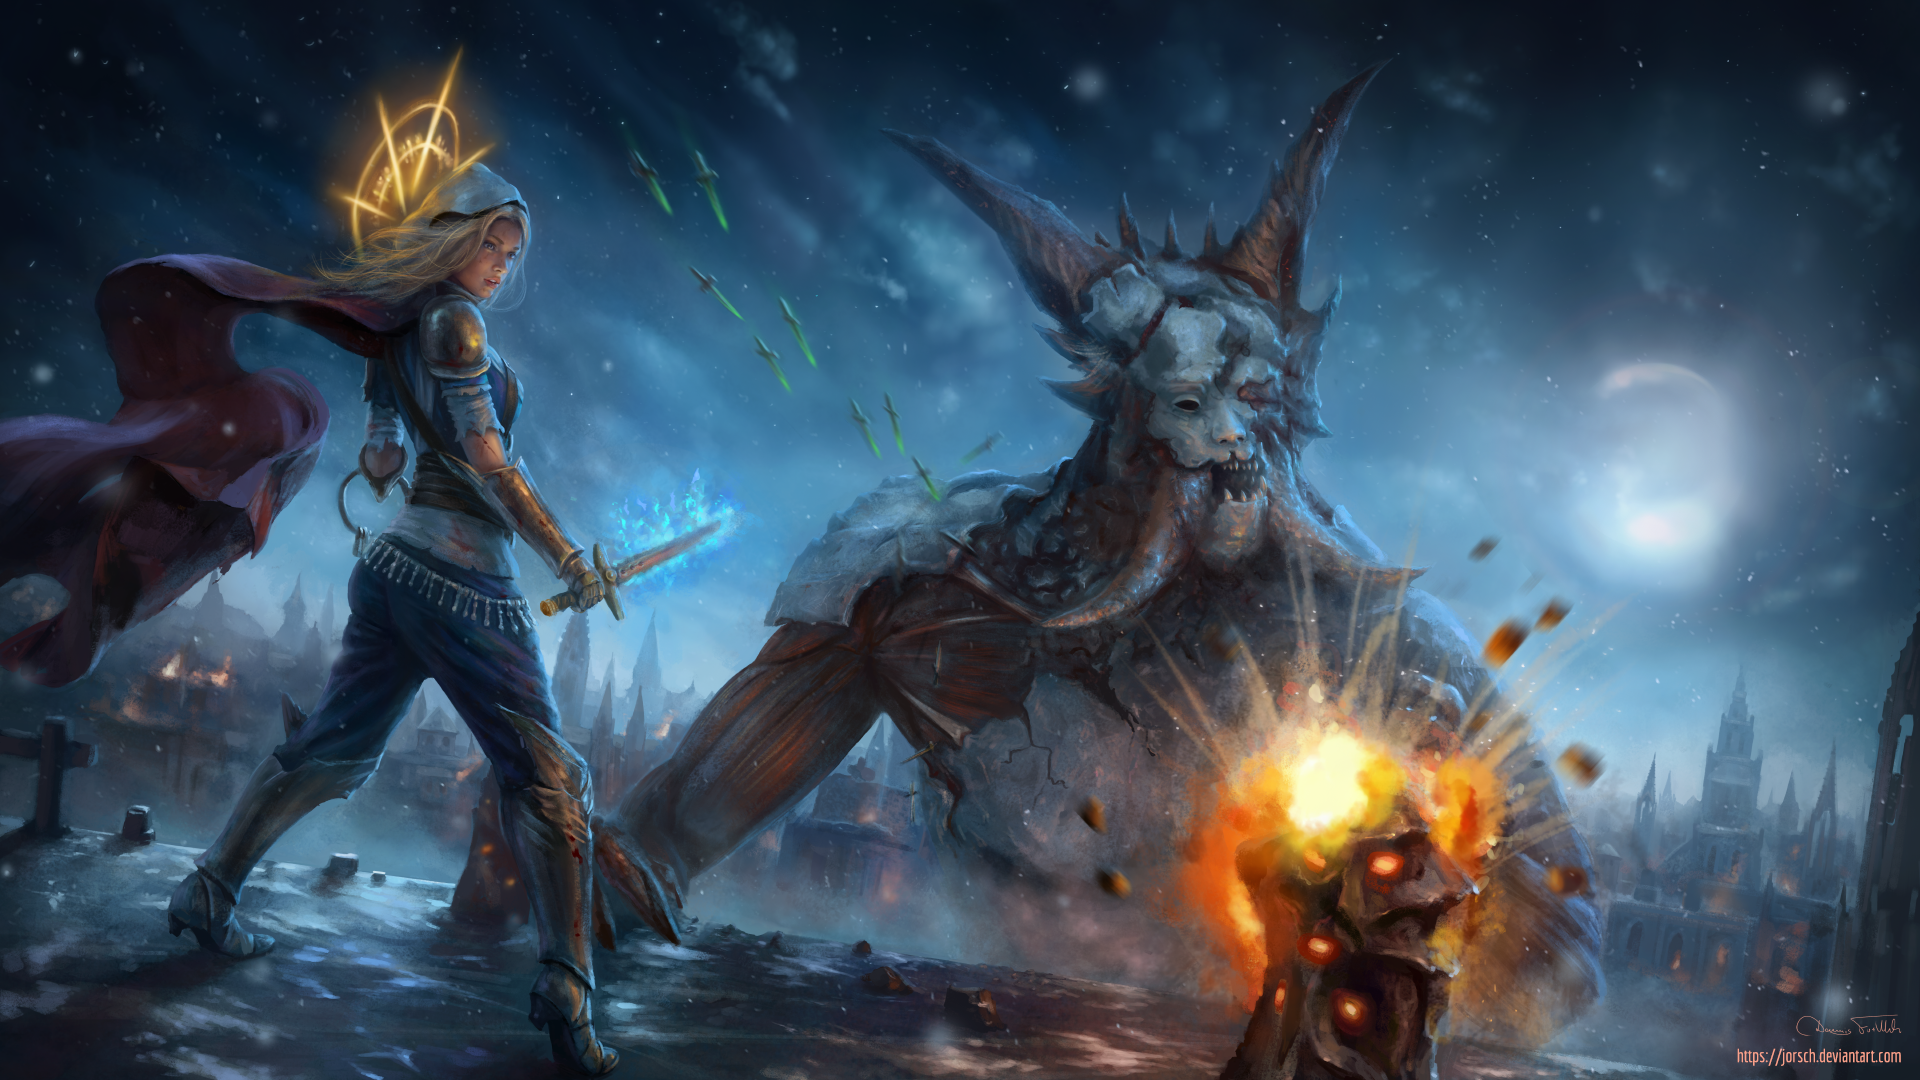 path_of_exile___facing_kitava_by_jorsch-dbkq03y.png